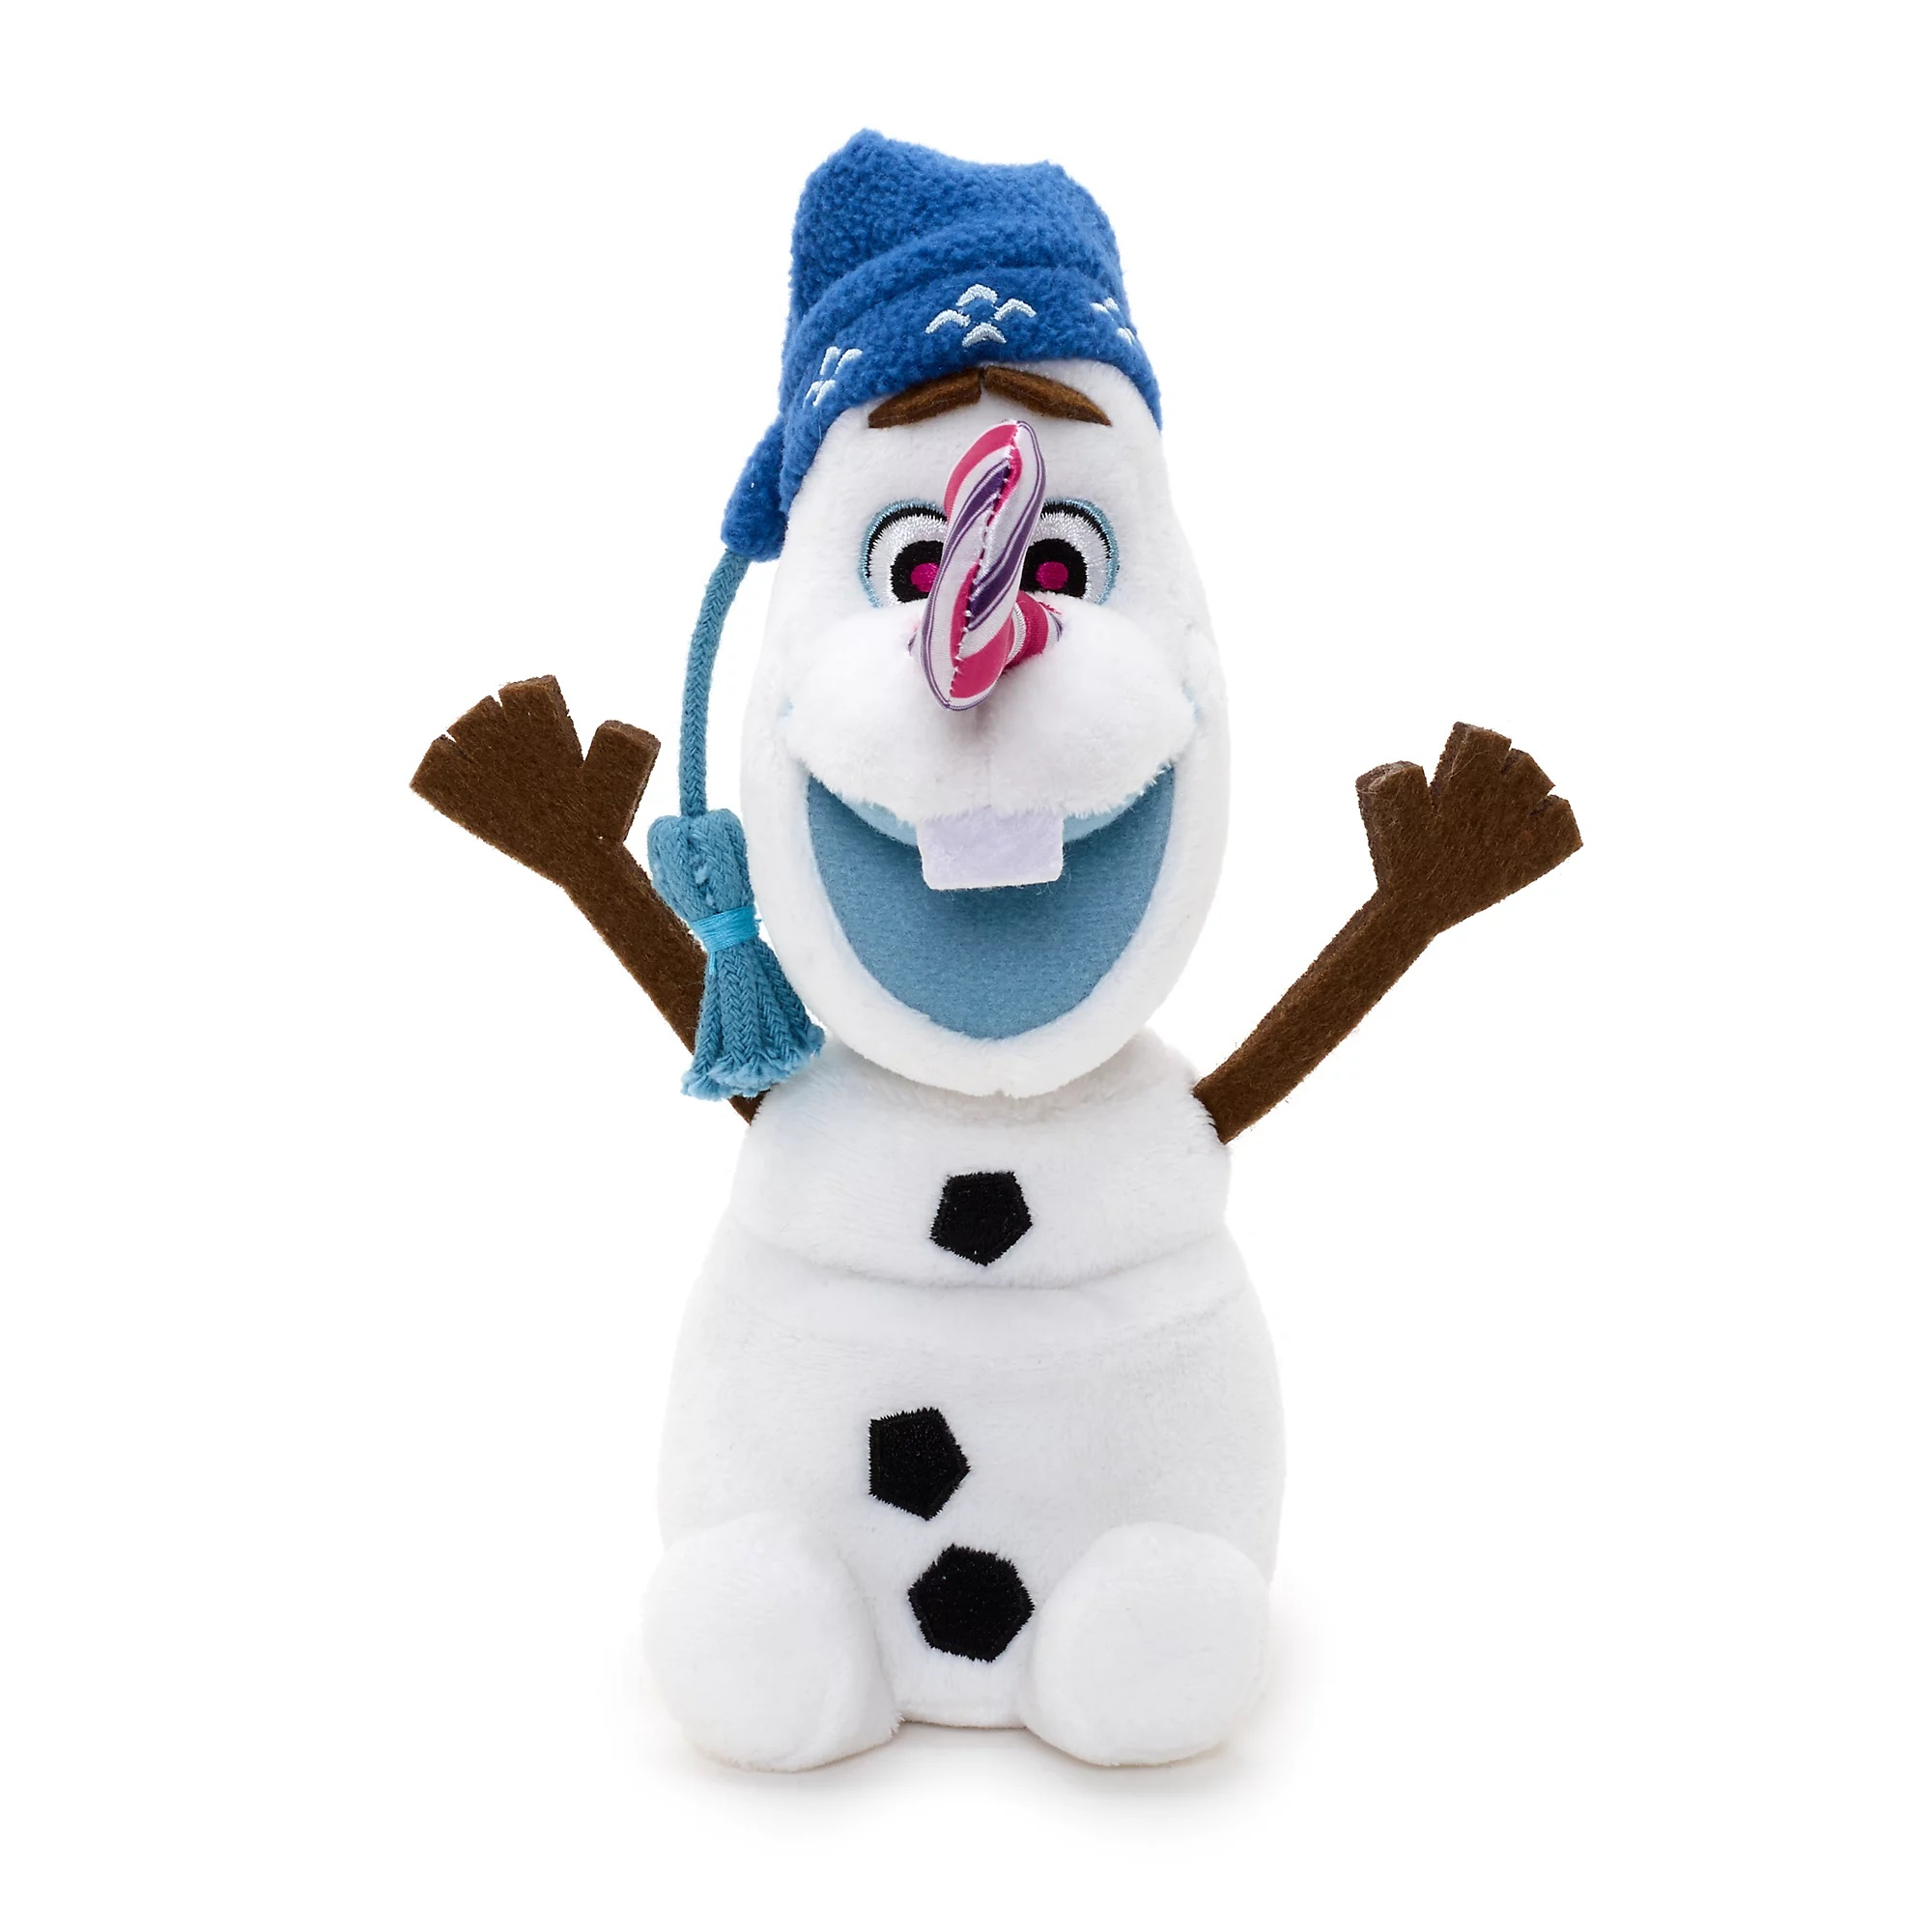 Disney - La reindes neiges : Peluche Olaf Mini Bean Bag (Olaf\'s Frozen Adventure)